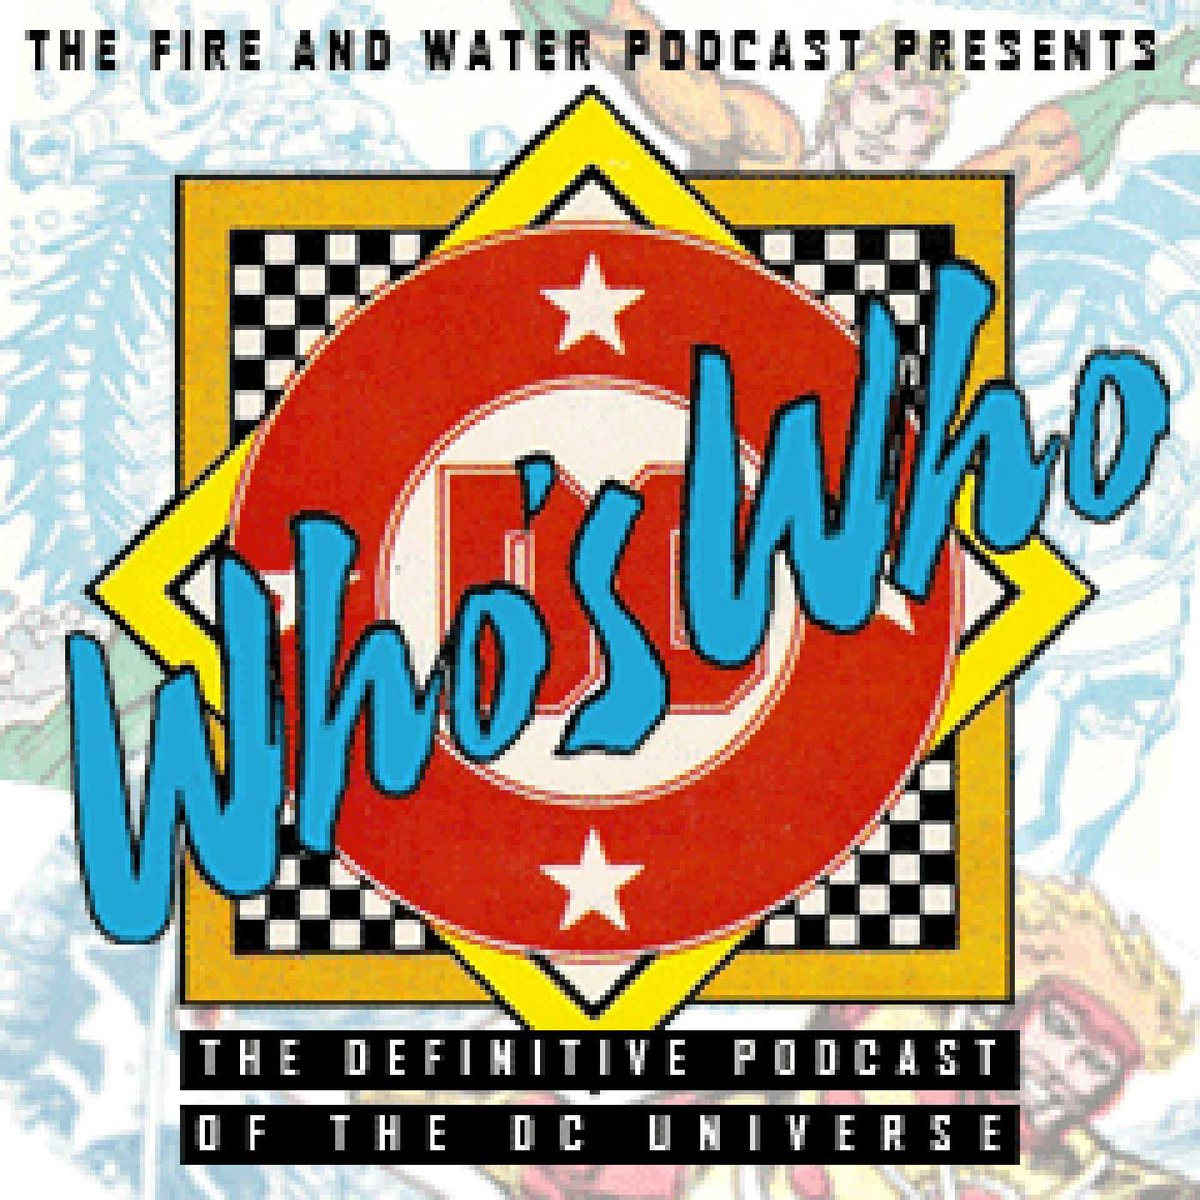 New WHO&#39;S WHO PODCAST! WHO'S WHO IN THE DC UNIVERSE #4 featuring Blue Beetle, #Cheetah, Granny Goodness, Phantom Lady, Plastic Man, Rocket Red, Ultra the Multi-Alien, Vandal Savage, #WonderWoman, and more! Plus YOUR Listener Feedback! #FWPodcasts  http:// fireandwaterpodcast.com/whoswho  &nbsp;  <br>http://pic.twitter.com/eQ15iJxTBk